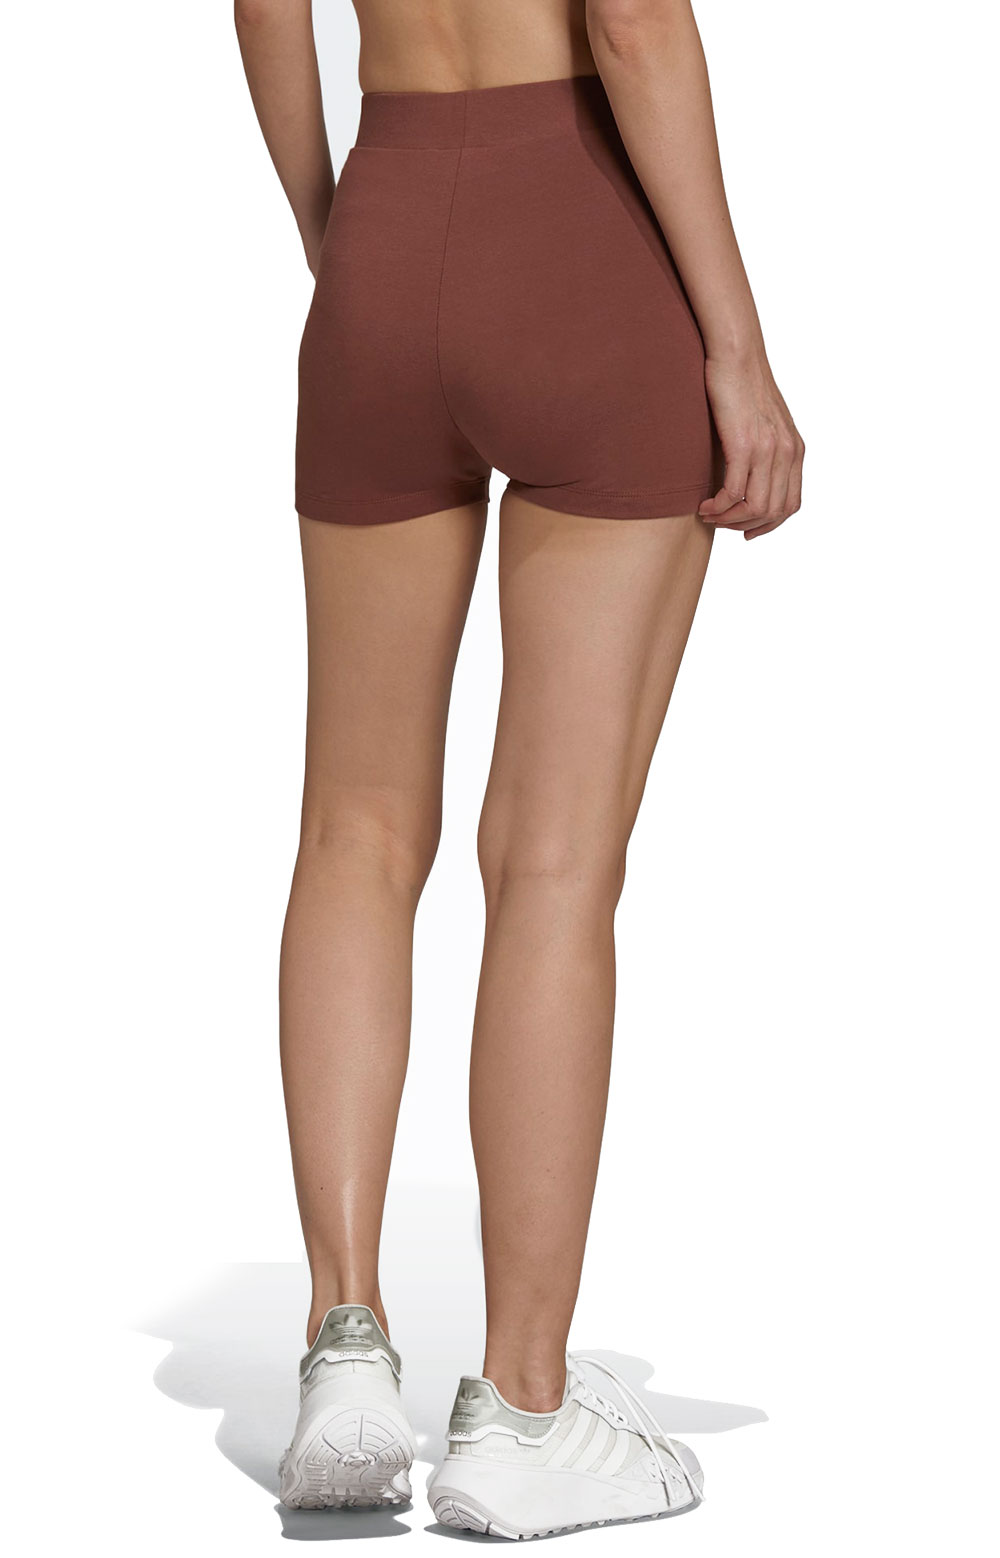 (HF9204) 2000 Luxe Shorts - Earth Brown  4